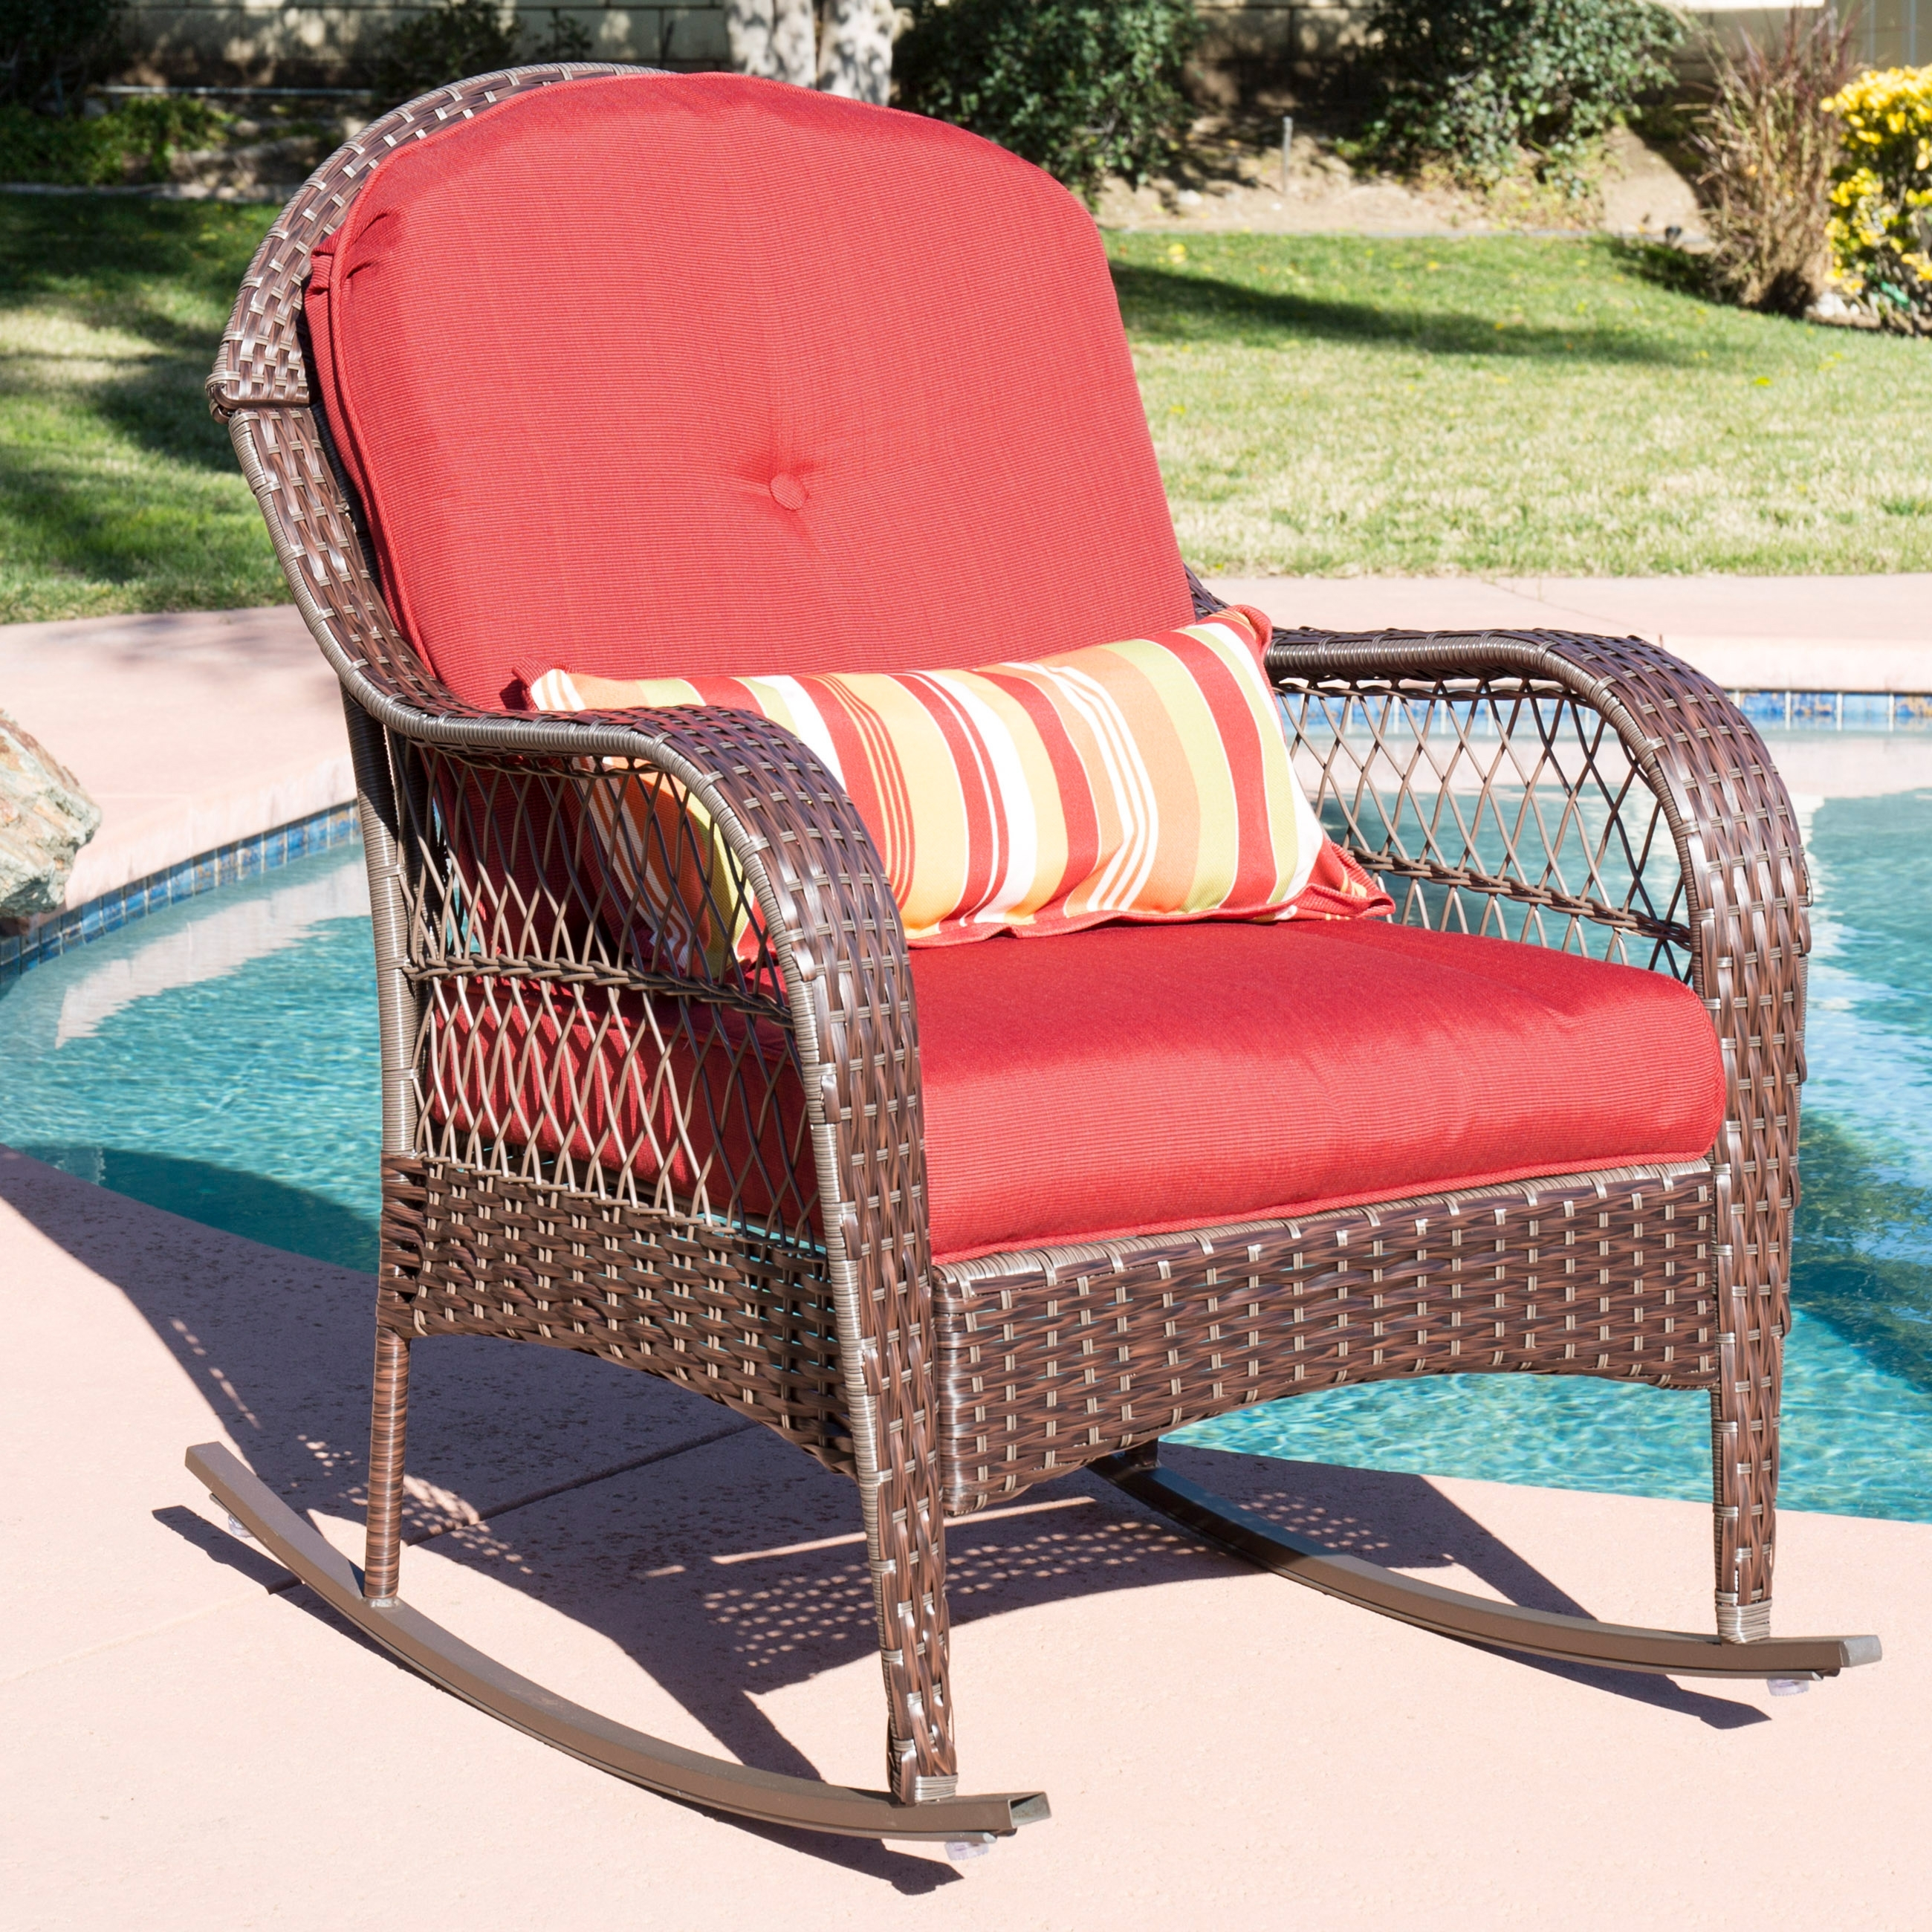 Trendy Best Choice Products Wicker Rocking Chair Patio Porch Deck Furniture Inside Wicker Rocking Chairs For Outdoors (View 9 of 15)